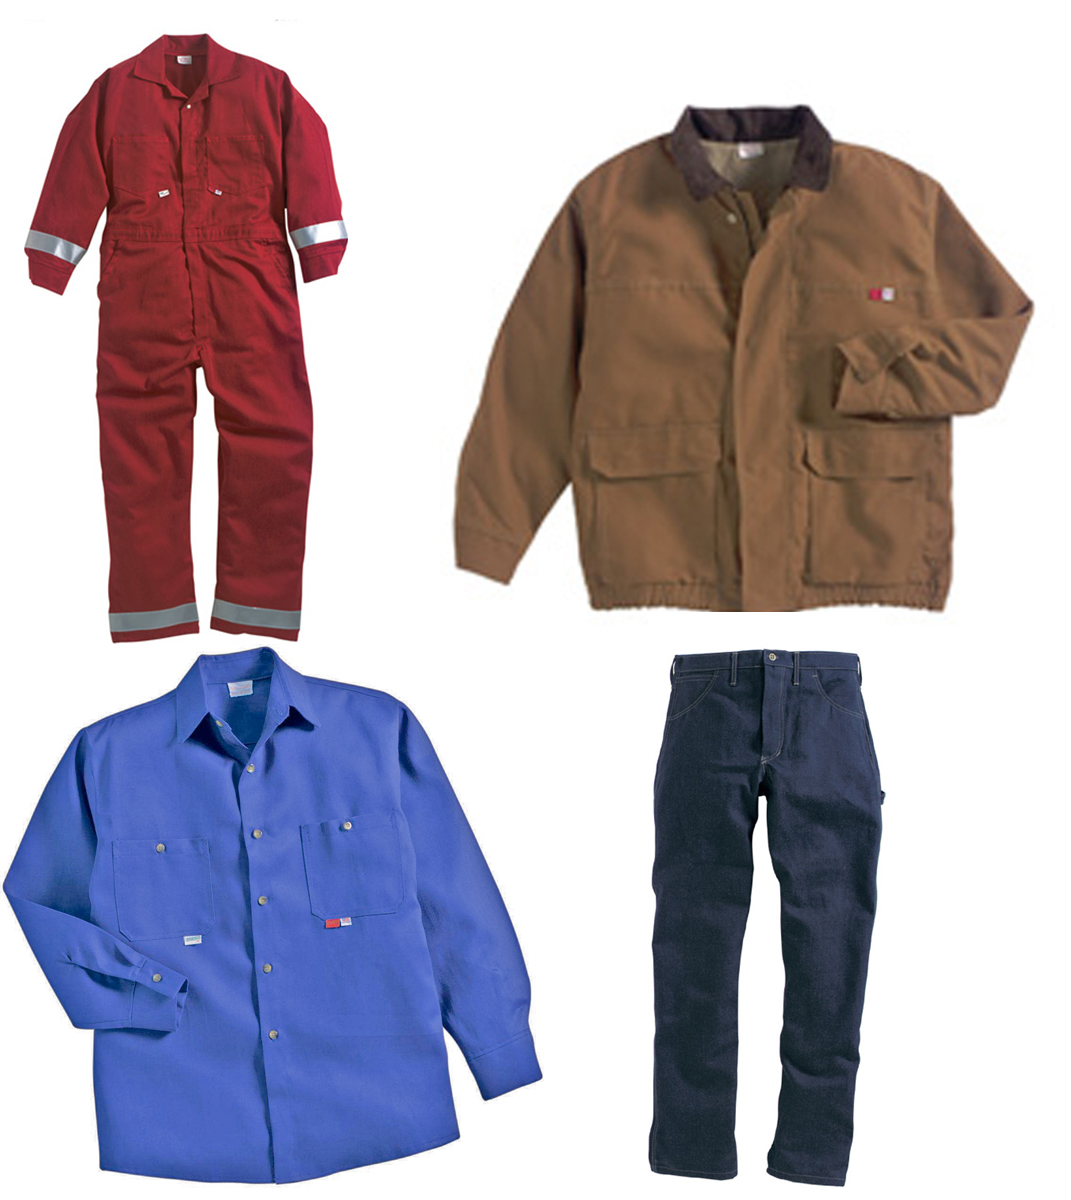 a132311d653 Flame Resistant Clothing